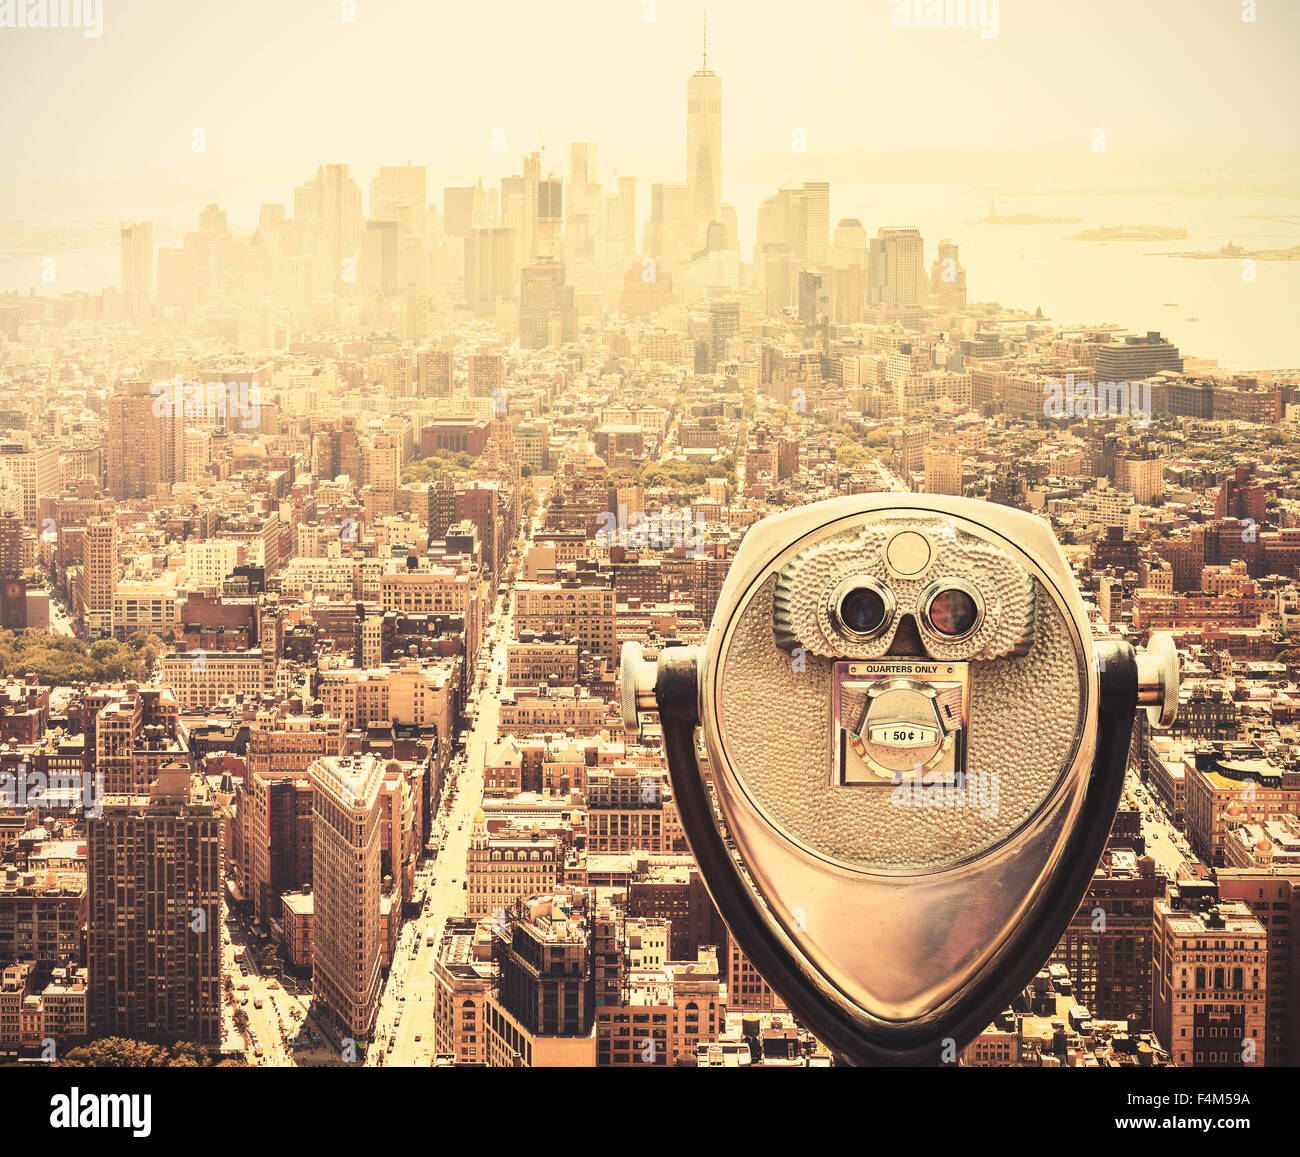 Retro vintage toned tourist binoculars over Manhattan Skyline, New York City, USA. - Stock Image